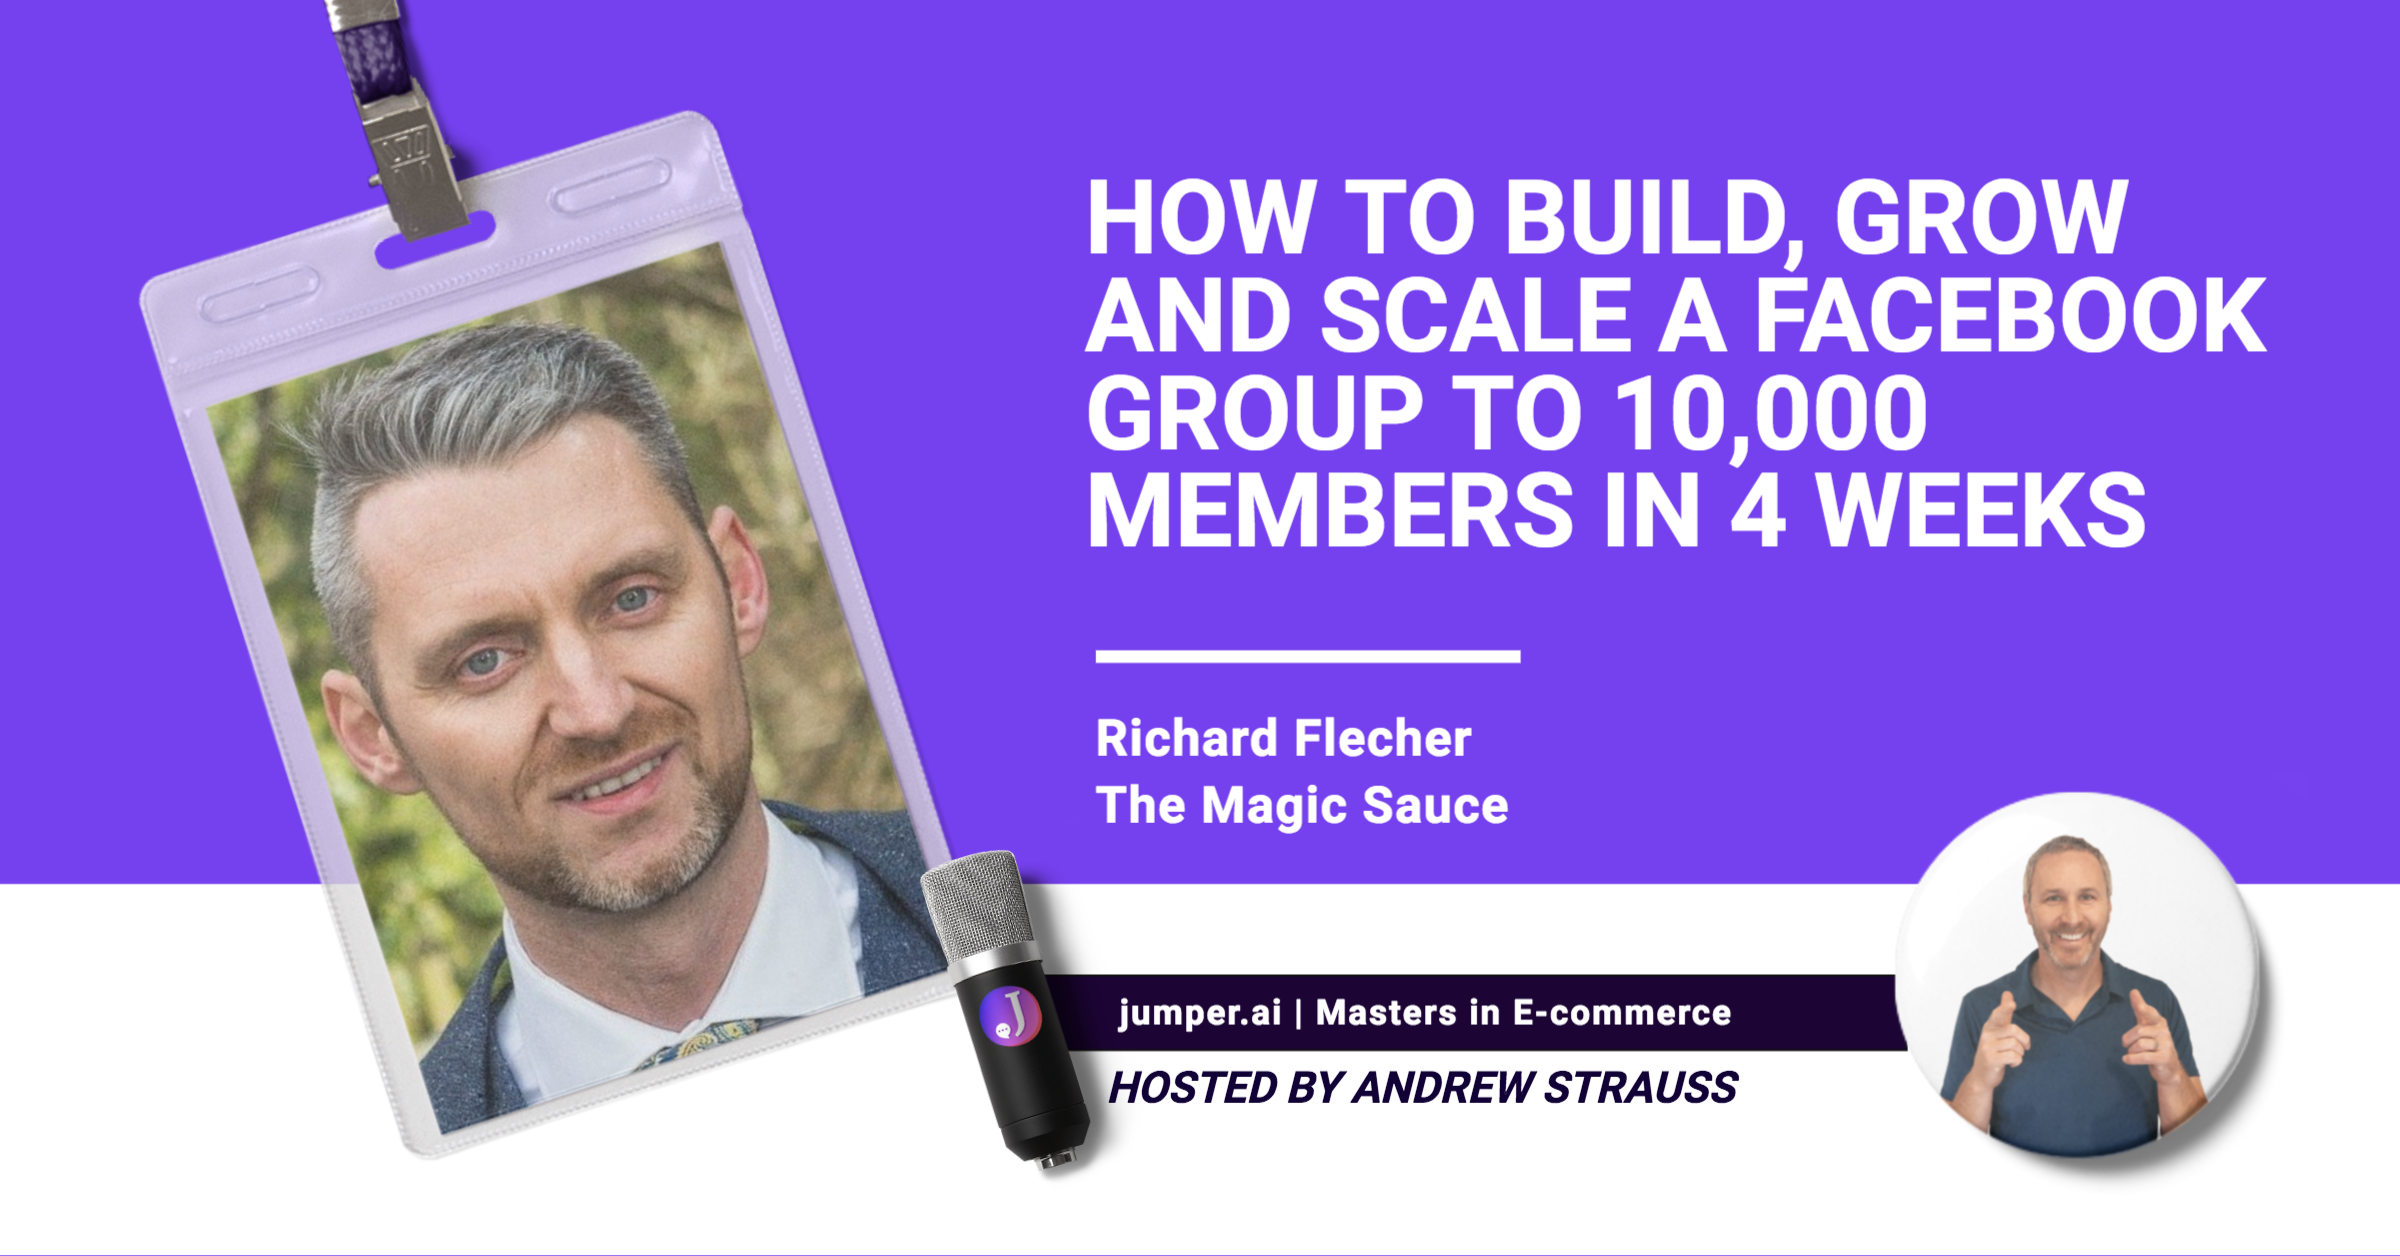 Vidcast # 4:  From dating life coach to Facebook group building master